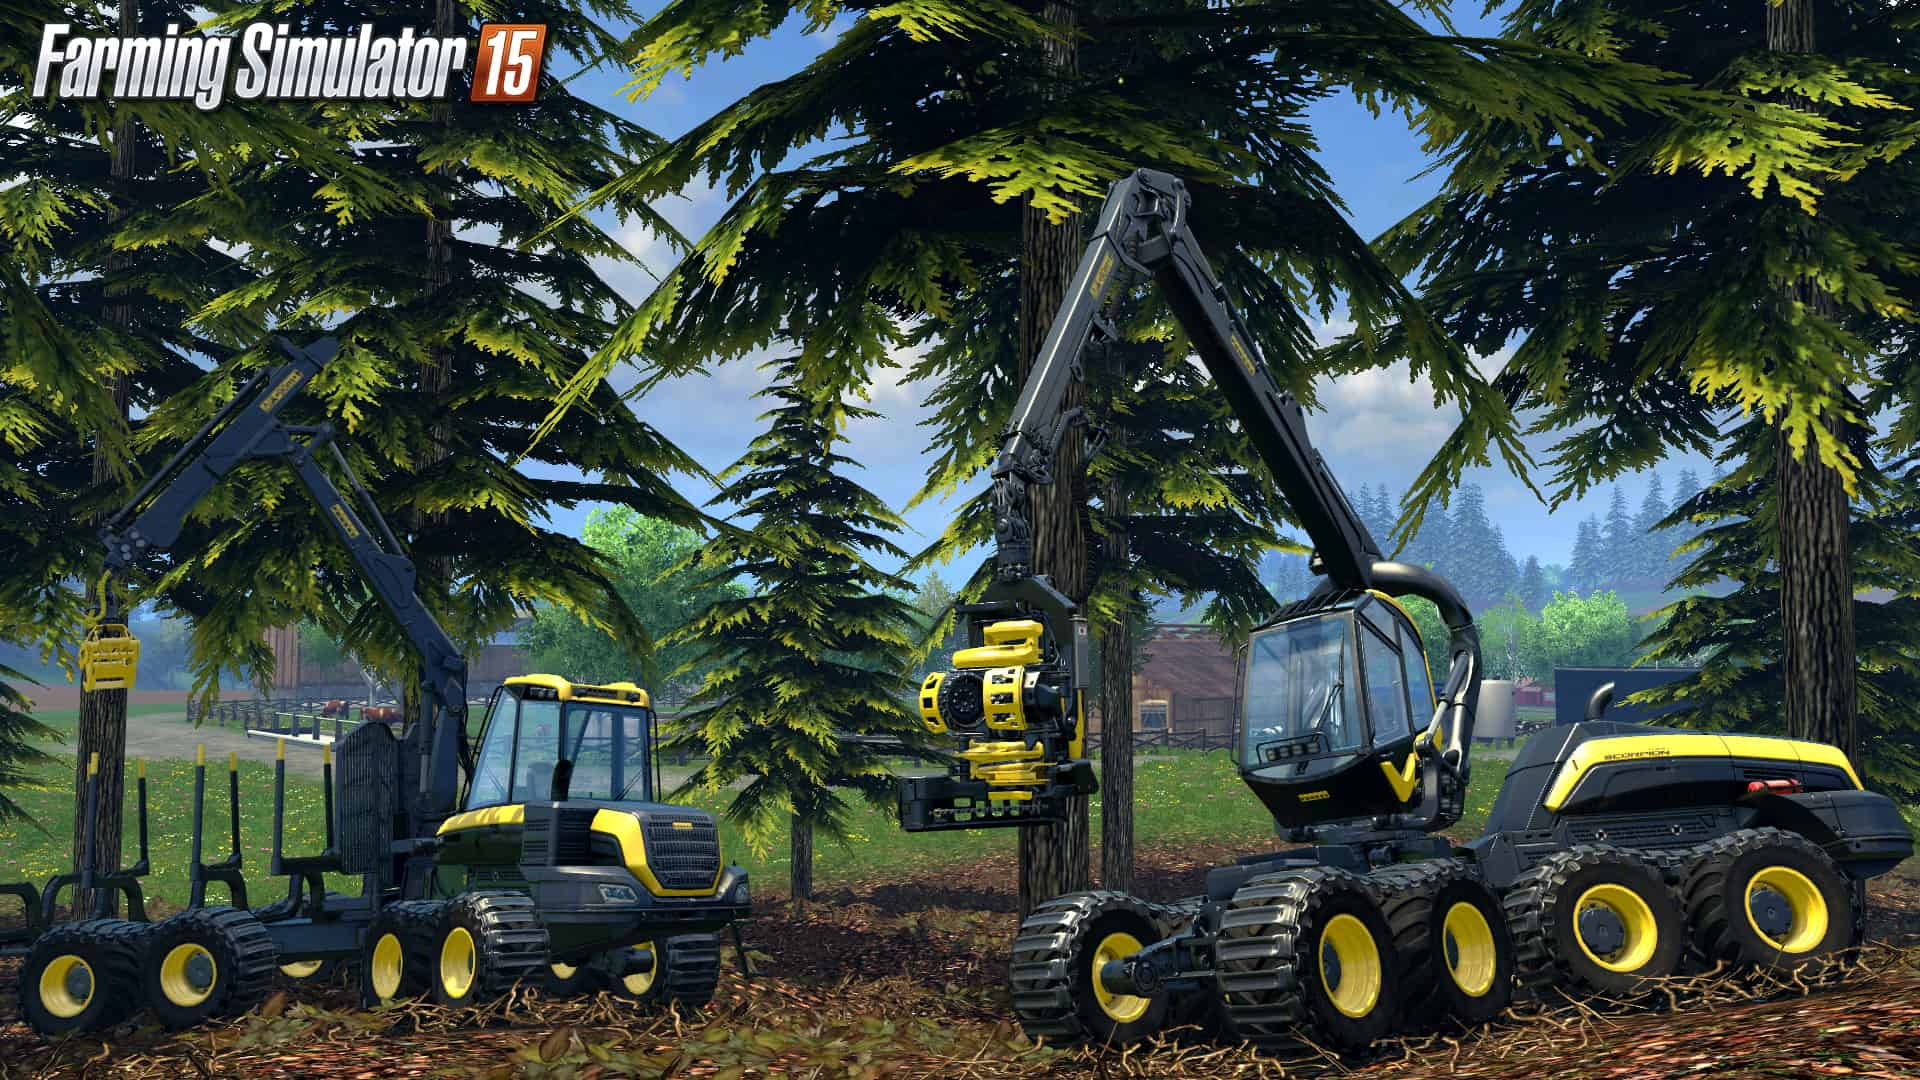 Farming Simulator 15 Telechargement Complet De Jeu Pc